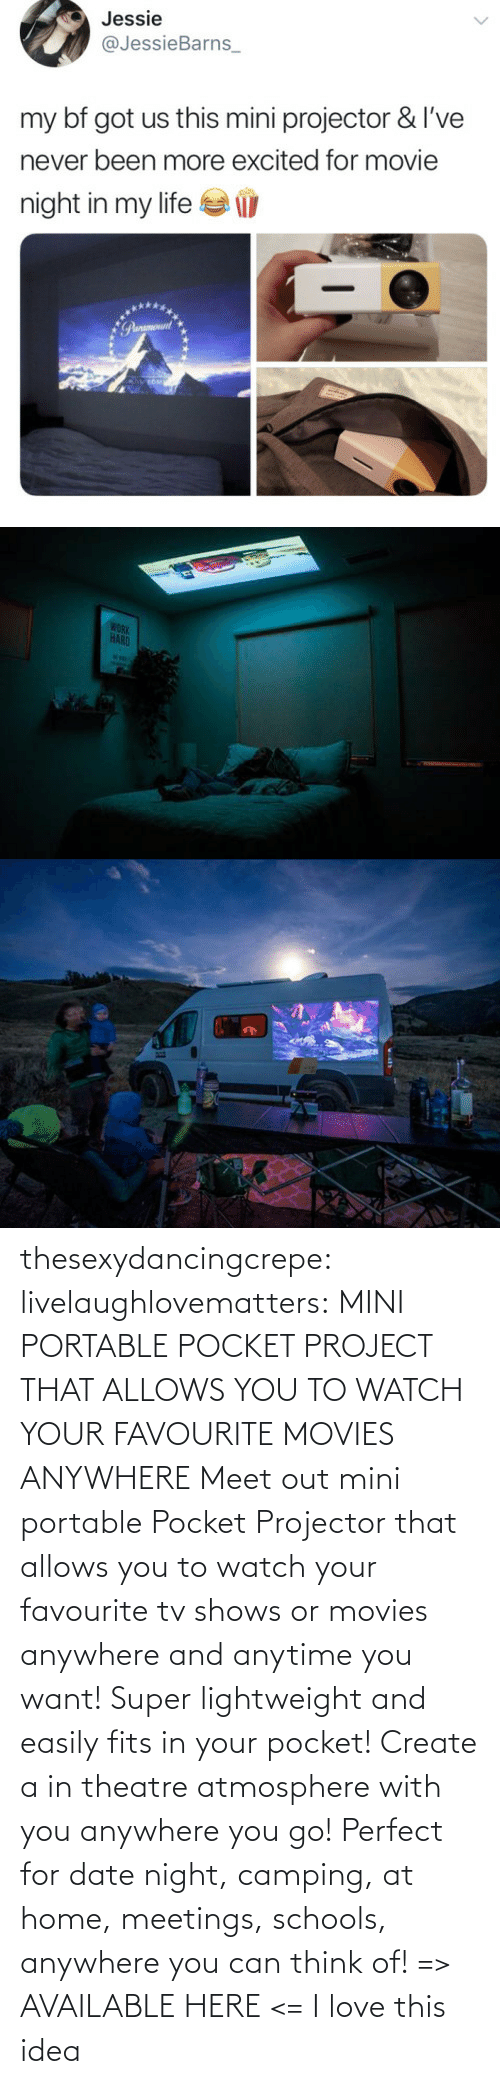 with you: thesexydancingcrepe: livelaughlovematters:   MINI PORTABLE POCKET PROJECT THAT ALLOWS YOU TO WATCH YOUR FAVOURITE MOVIES ANYWHERE Meet out mini portable Pocket Projector that allows you to watch your favourite tv shows or movies anywhere and anytime you want! Super lightweight and easily fits in your pocket! Create a in theatre atmosphere with you anywhere you go! Perfect for date night, camping, at home, meetings, schools, anywhere you can think of! => AVAILABLE HERE <=    I love this idea